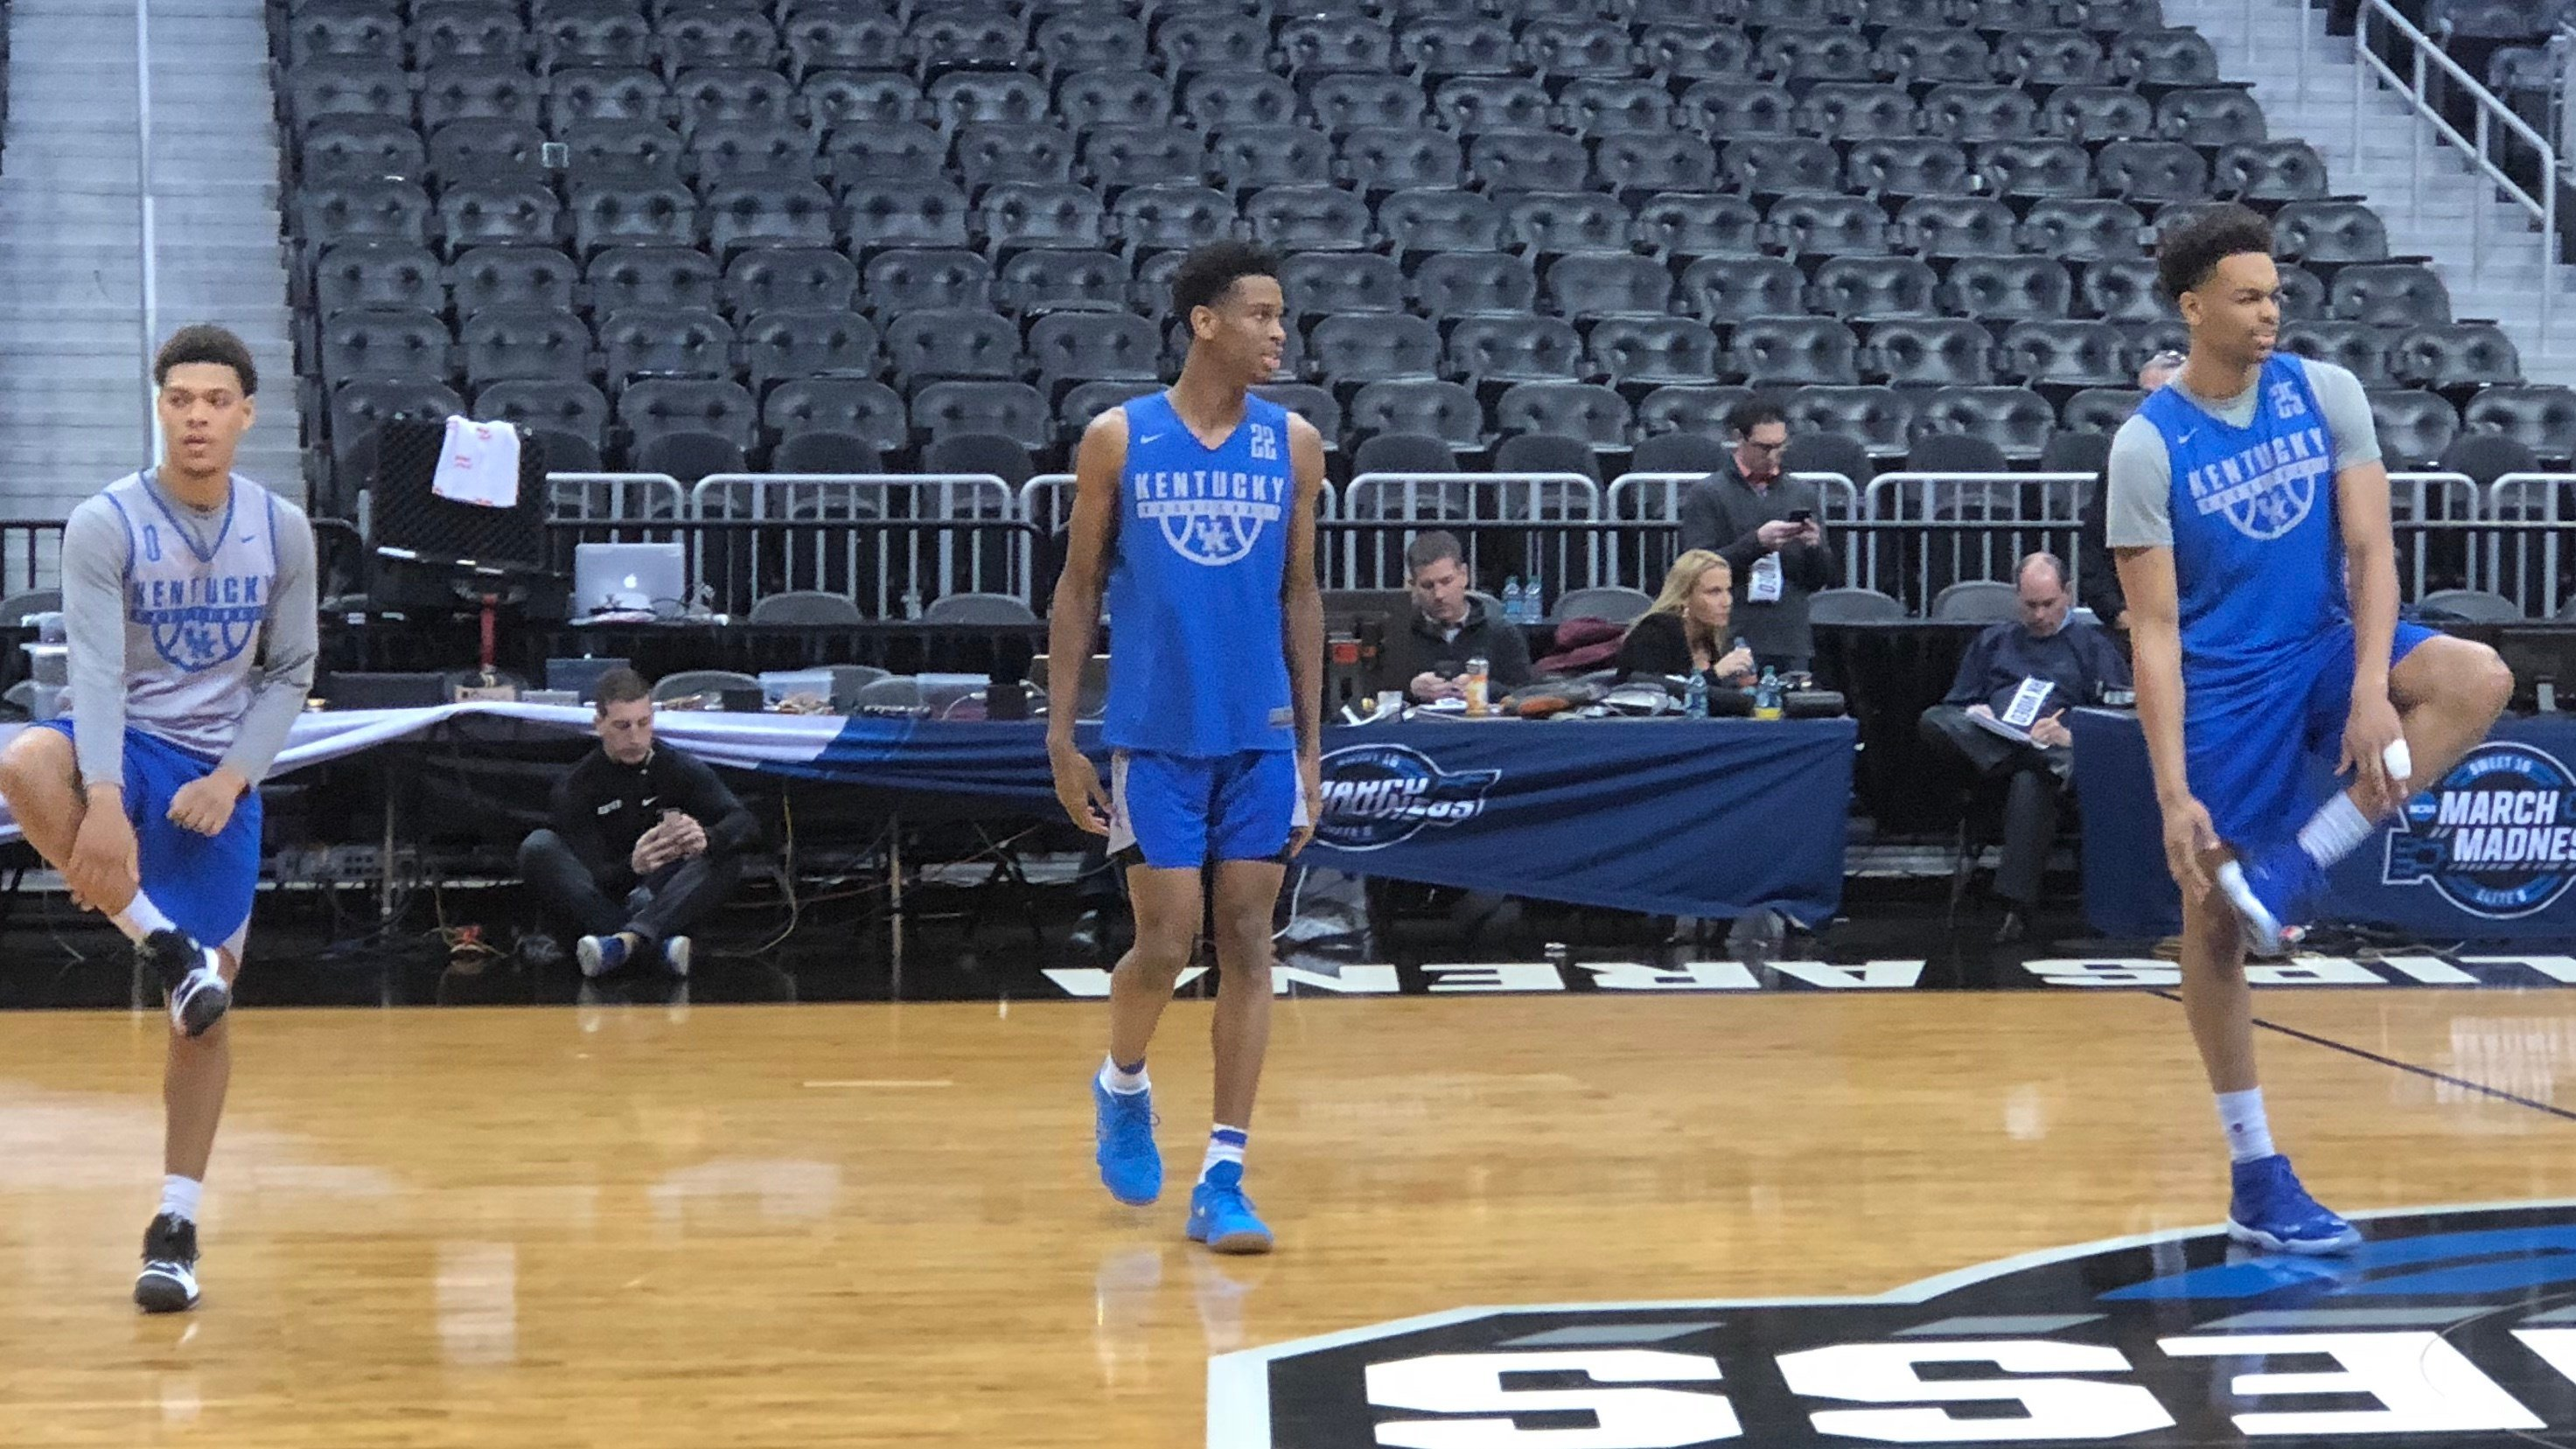 Quade Green (from left) Shai Gilgeous-Alexander and P.J. Washington led Kentucky through practice Wednesday.